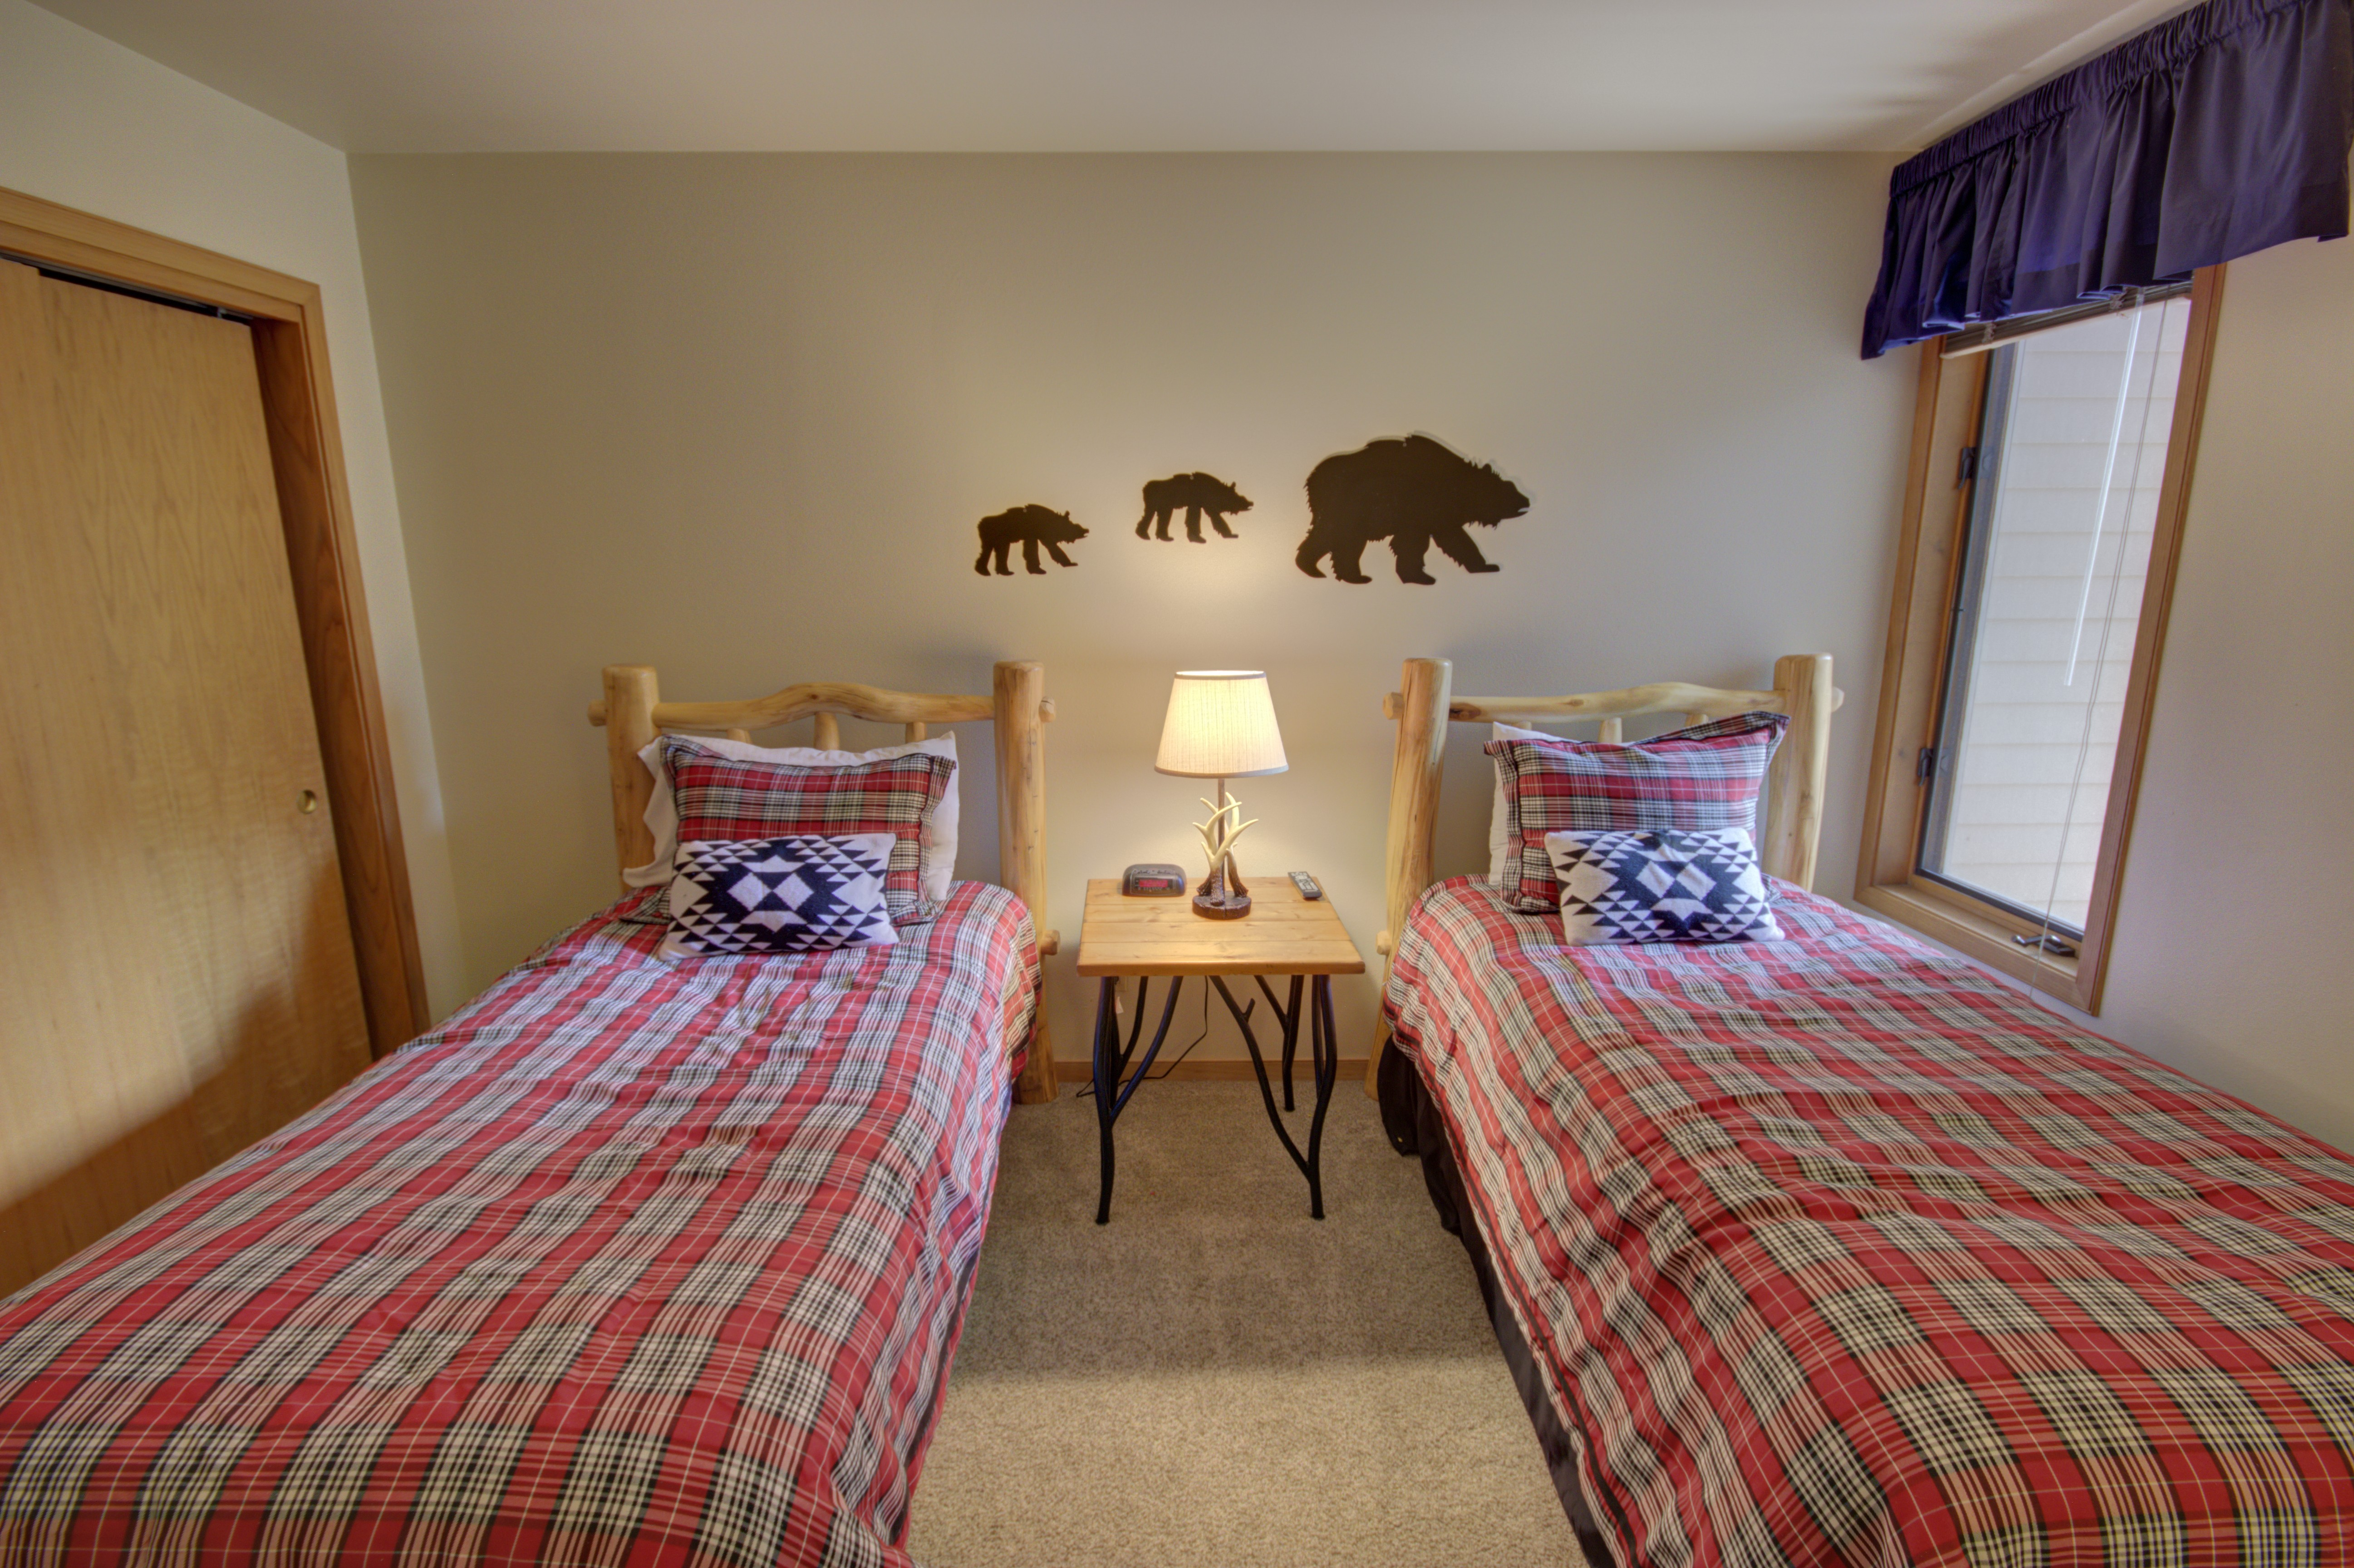 Bedroom perfect for the kids and has super cute wall decor